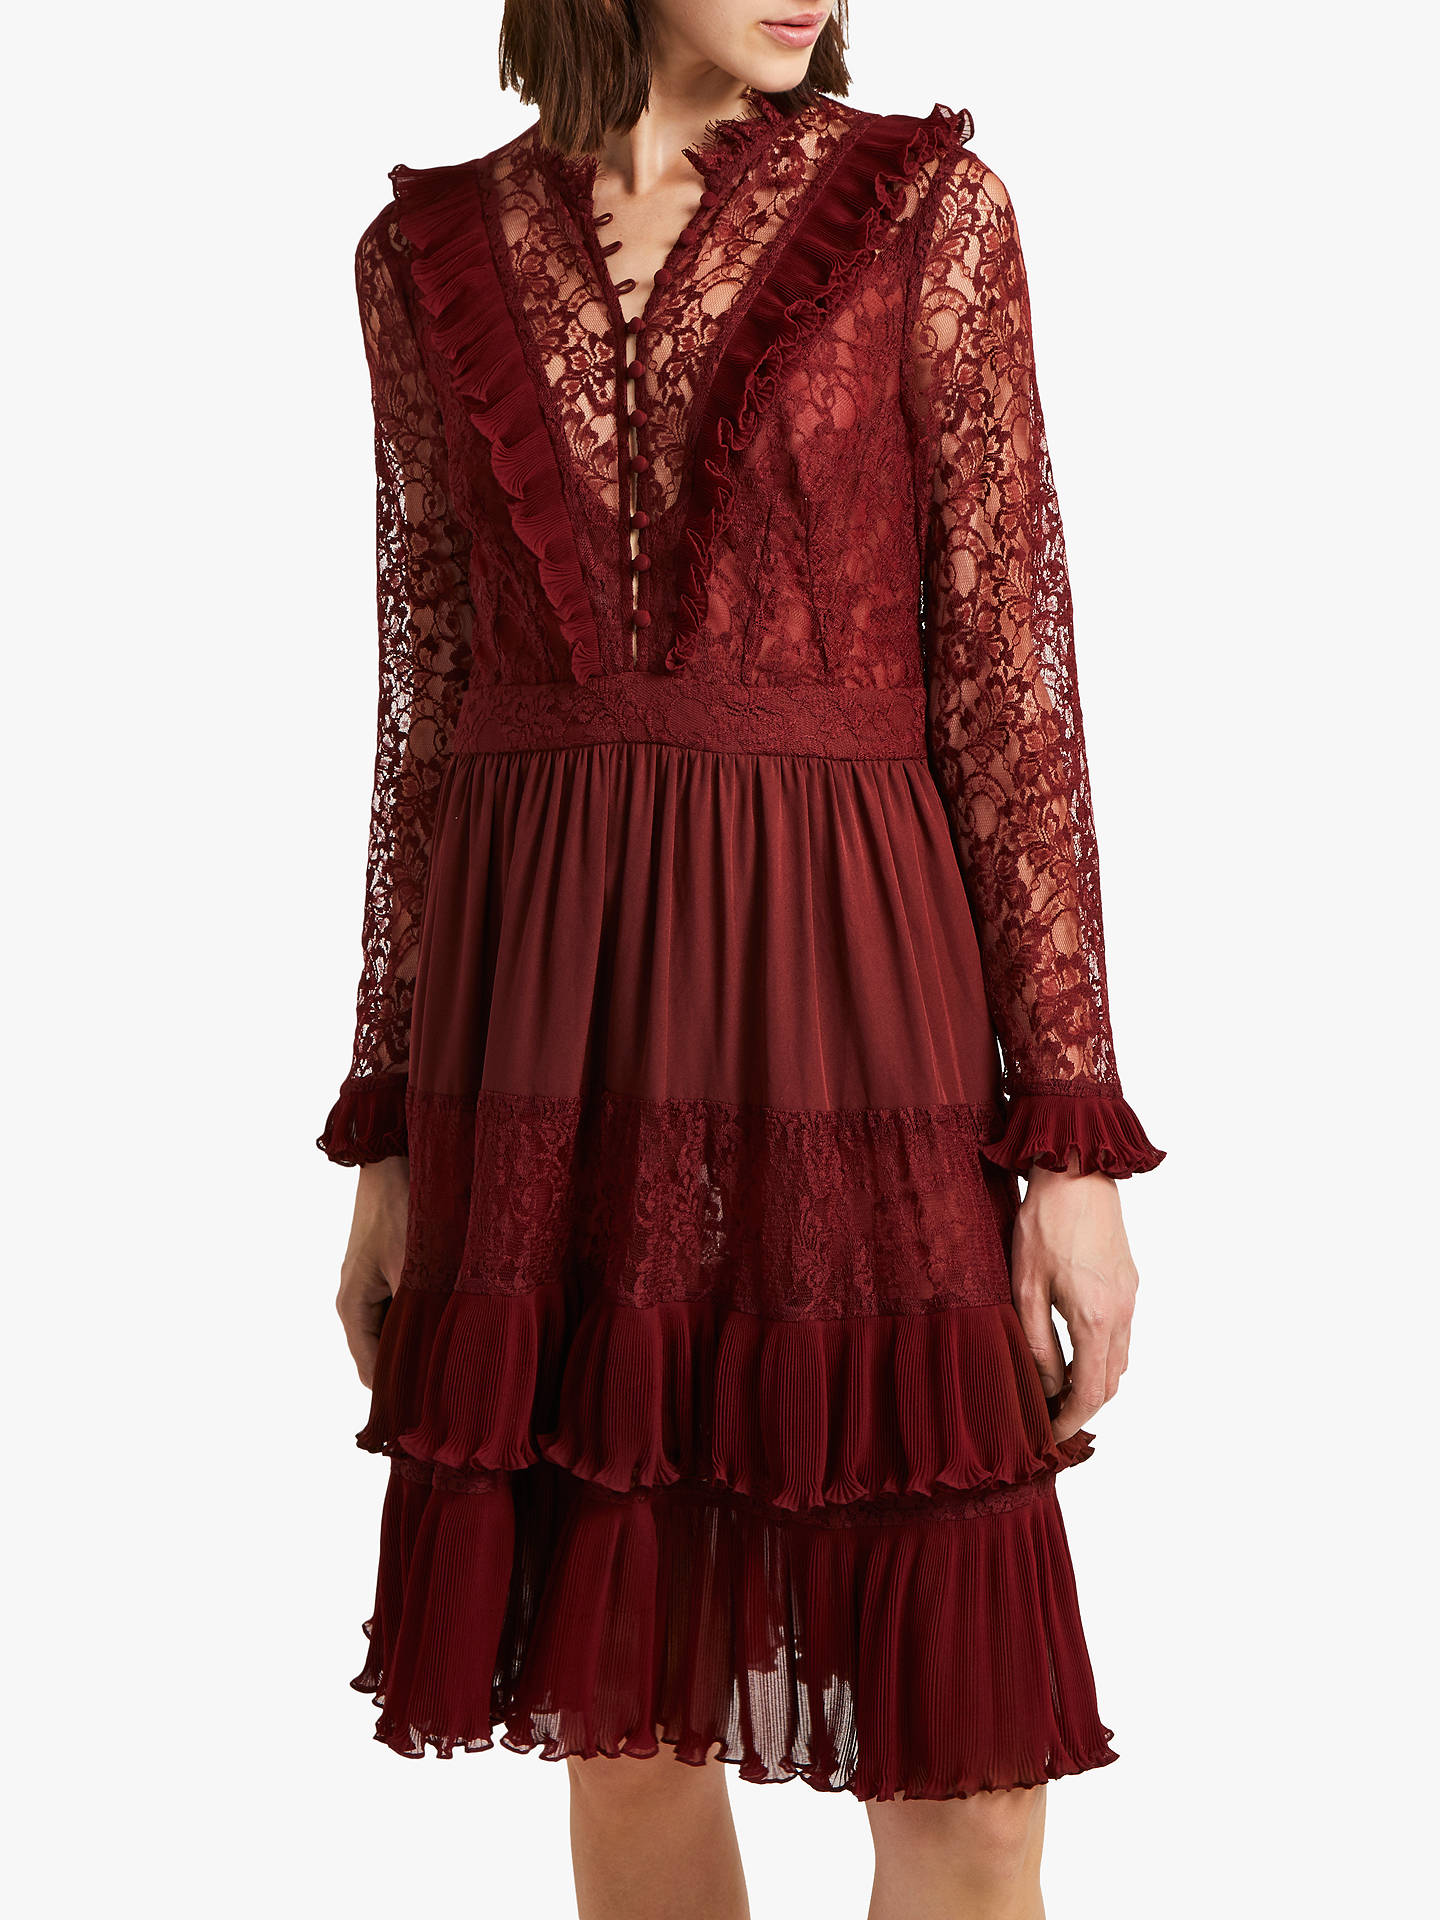 6160ba293254 Buy French Connection Clandre Vintage Lace Dress, Rosso Red, 6 Online at  johnlewis.